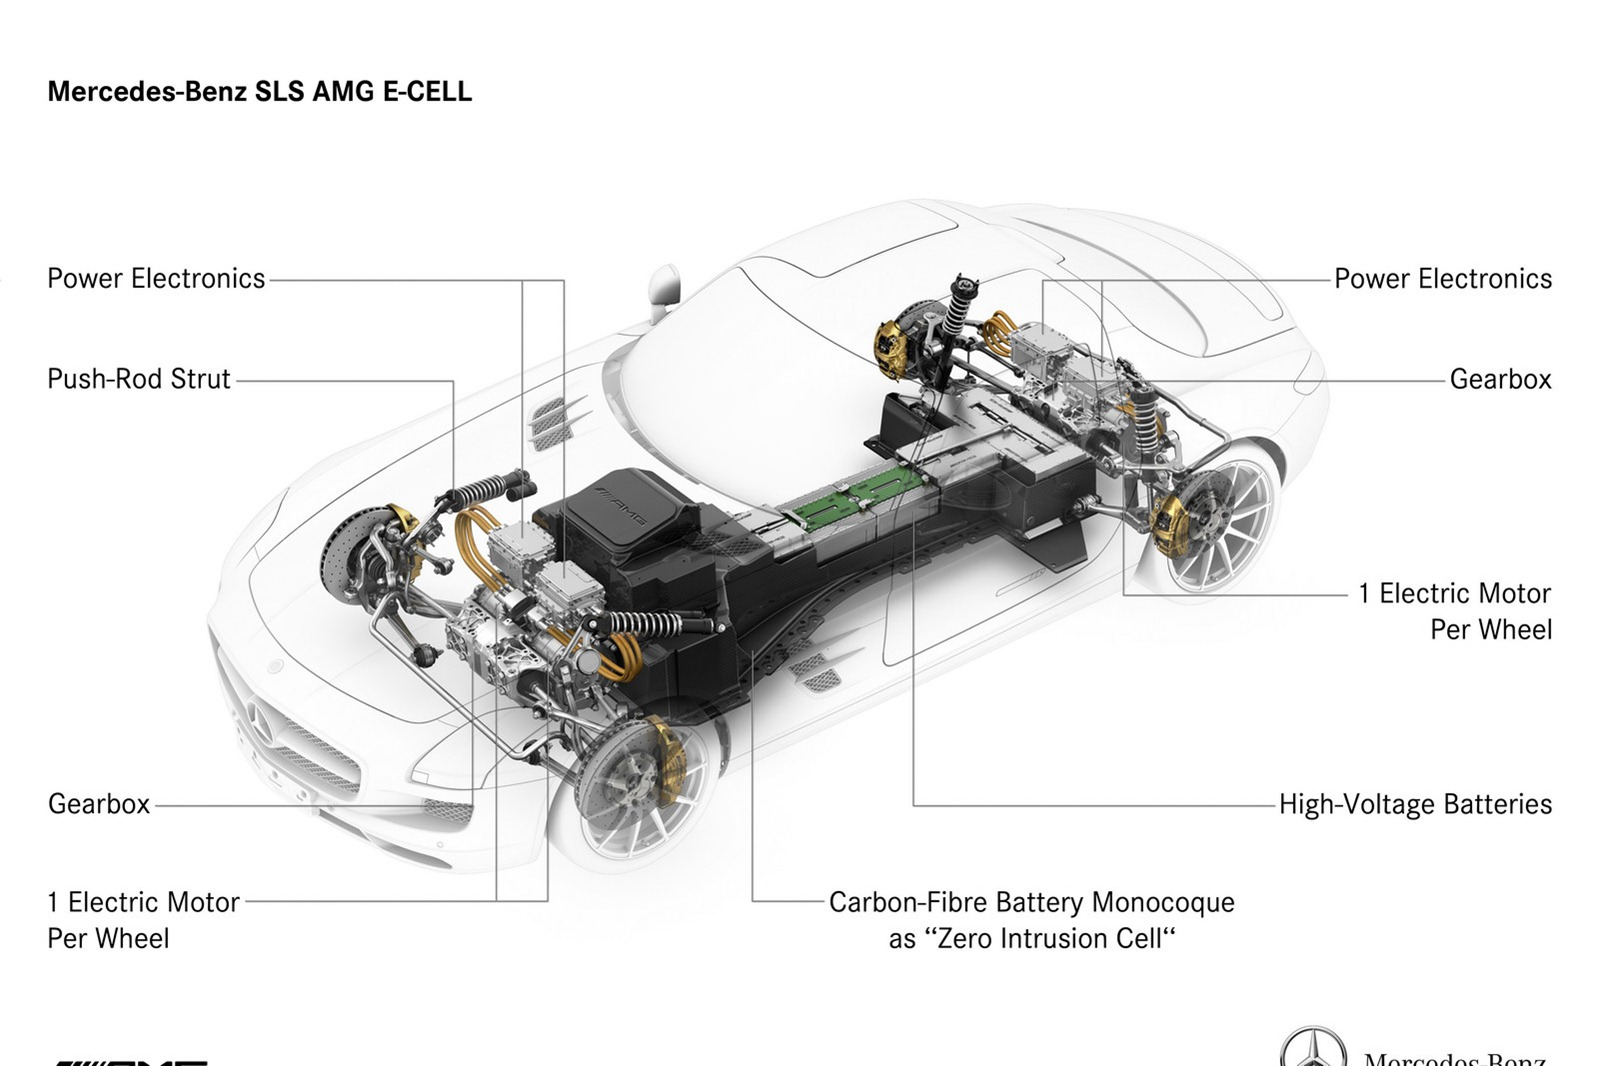 hight resolution of mercedes reveal sls e cell s awd torque vectoring powertrain electric vehicle news